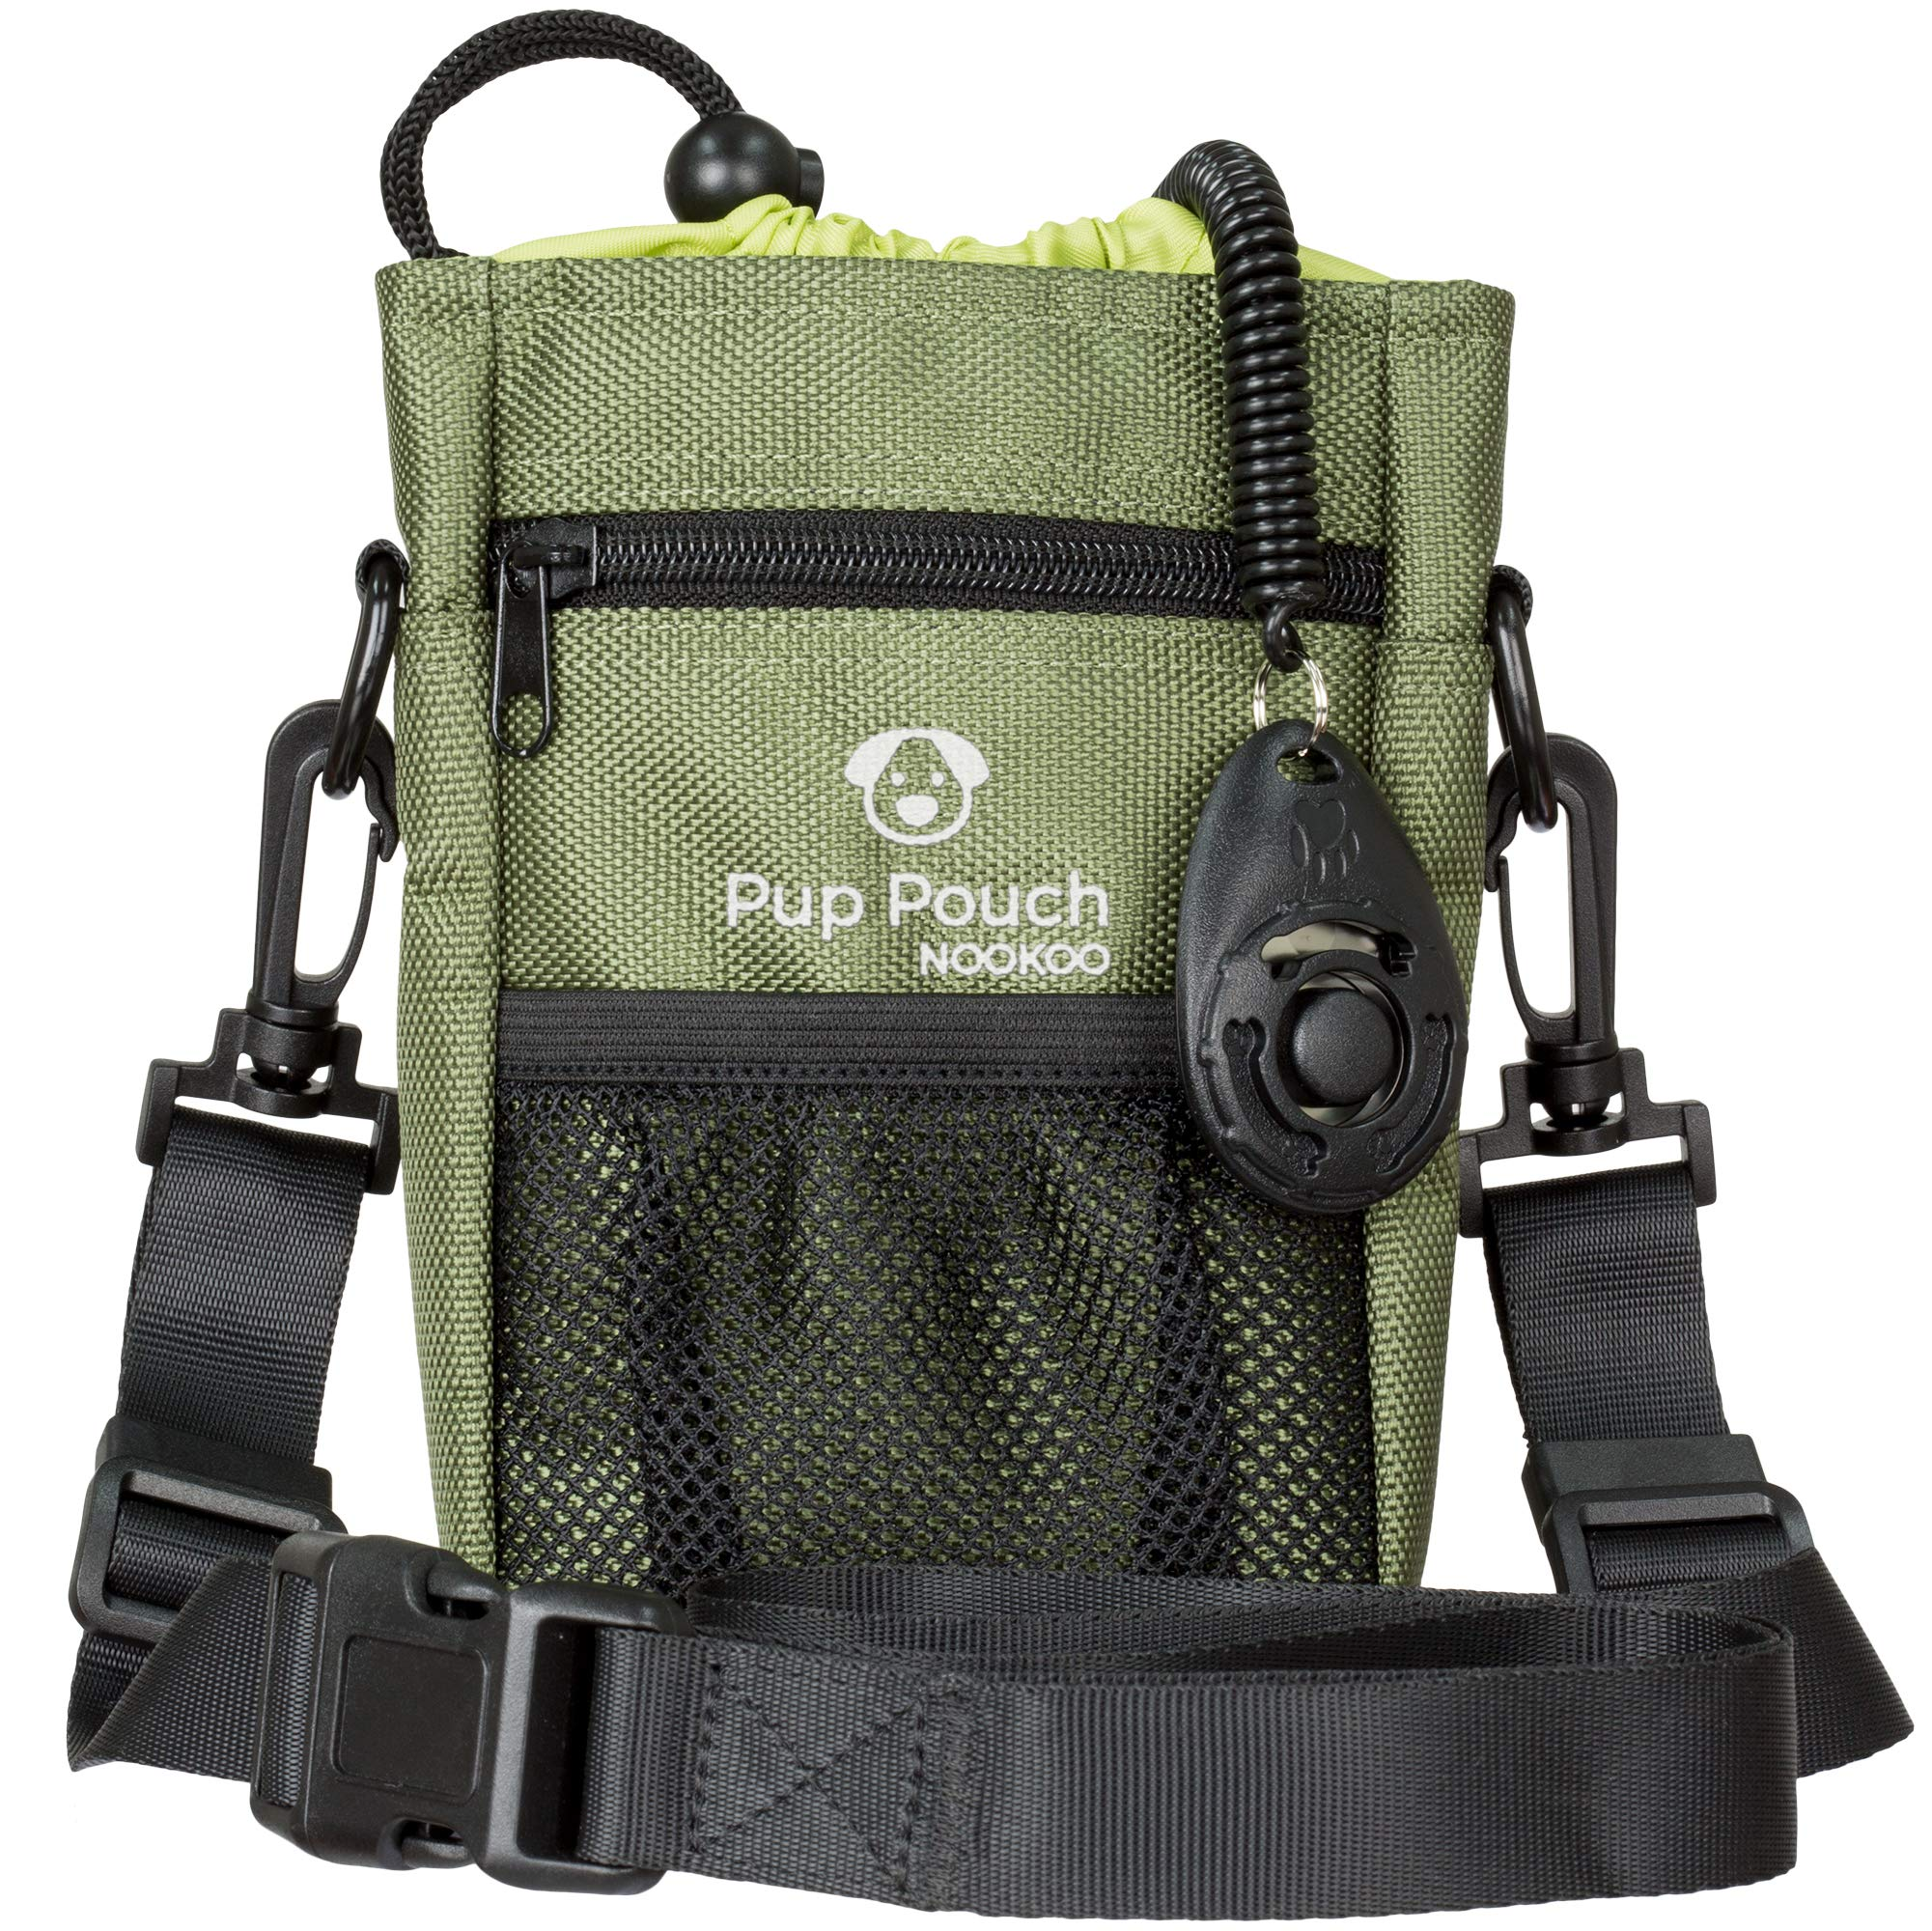 Dog Clicker Treat Walking Training Pouch Bag Bonus Clicker Trainer - Built-in Double Poop Bag Dispenser, Drawstring Closure - Carries Balls, Toys, Treats - 3 Ways to Wear - Olive Green by Pup Pouch Nookoo